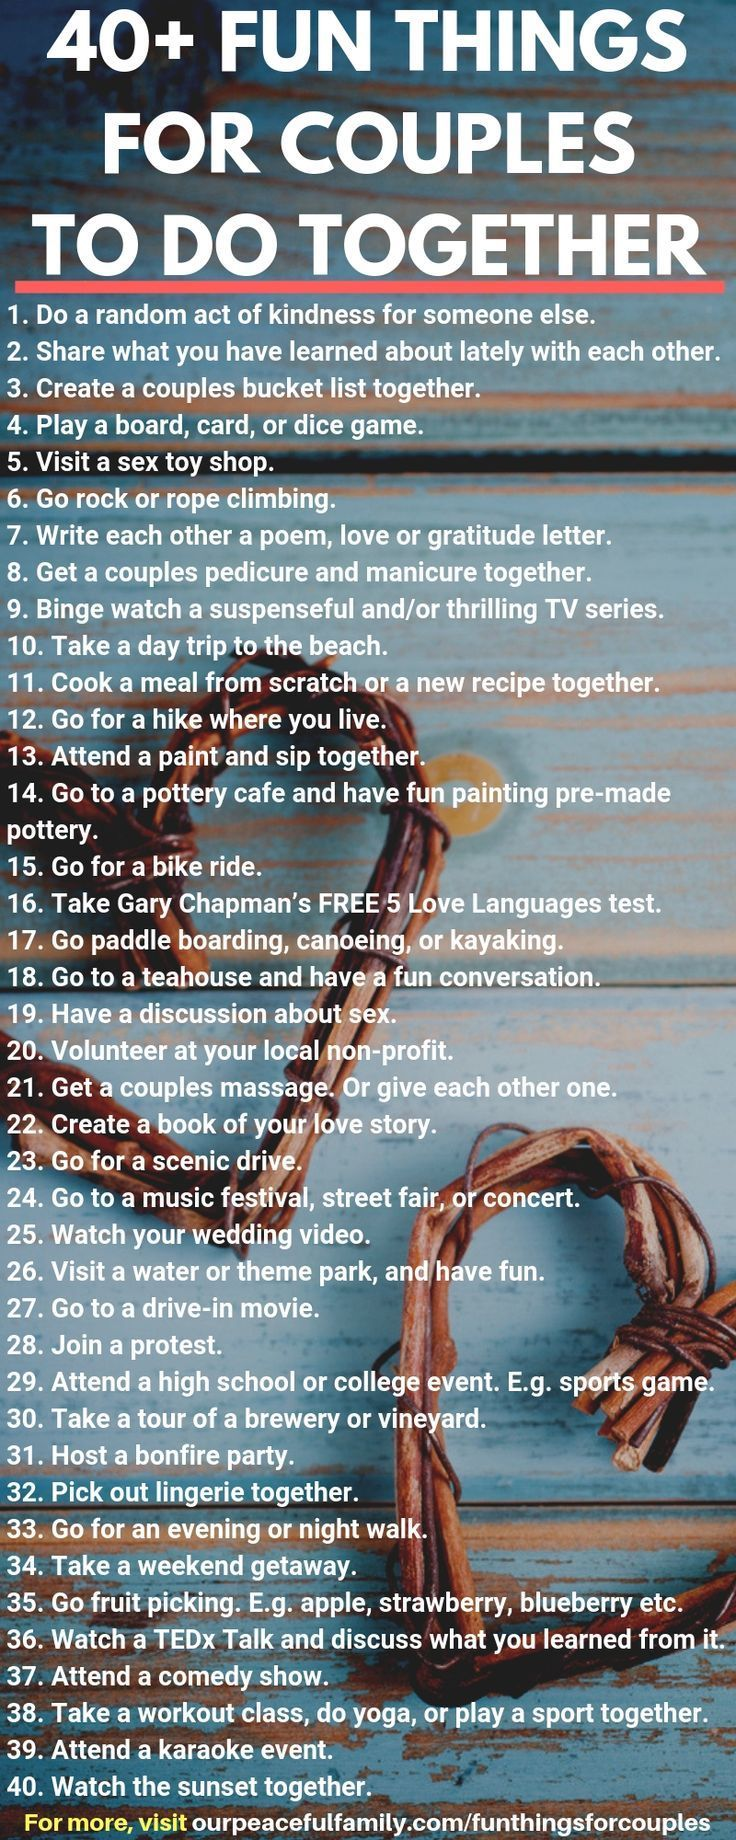 101+ Fun Things for Couples to Do: Cute Date Ideas…